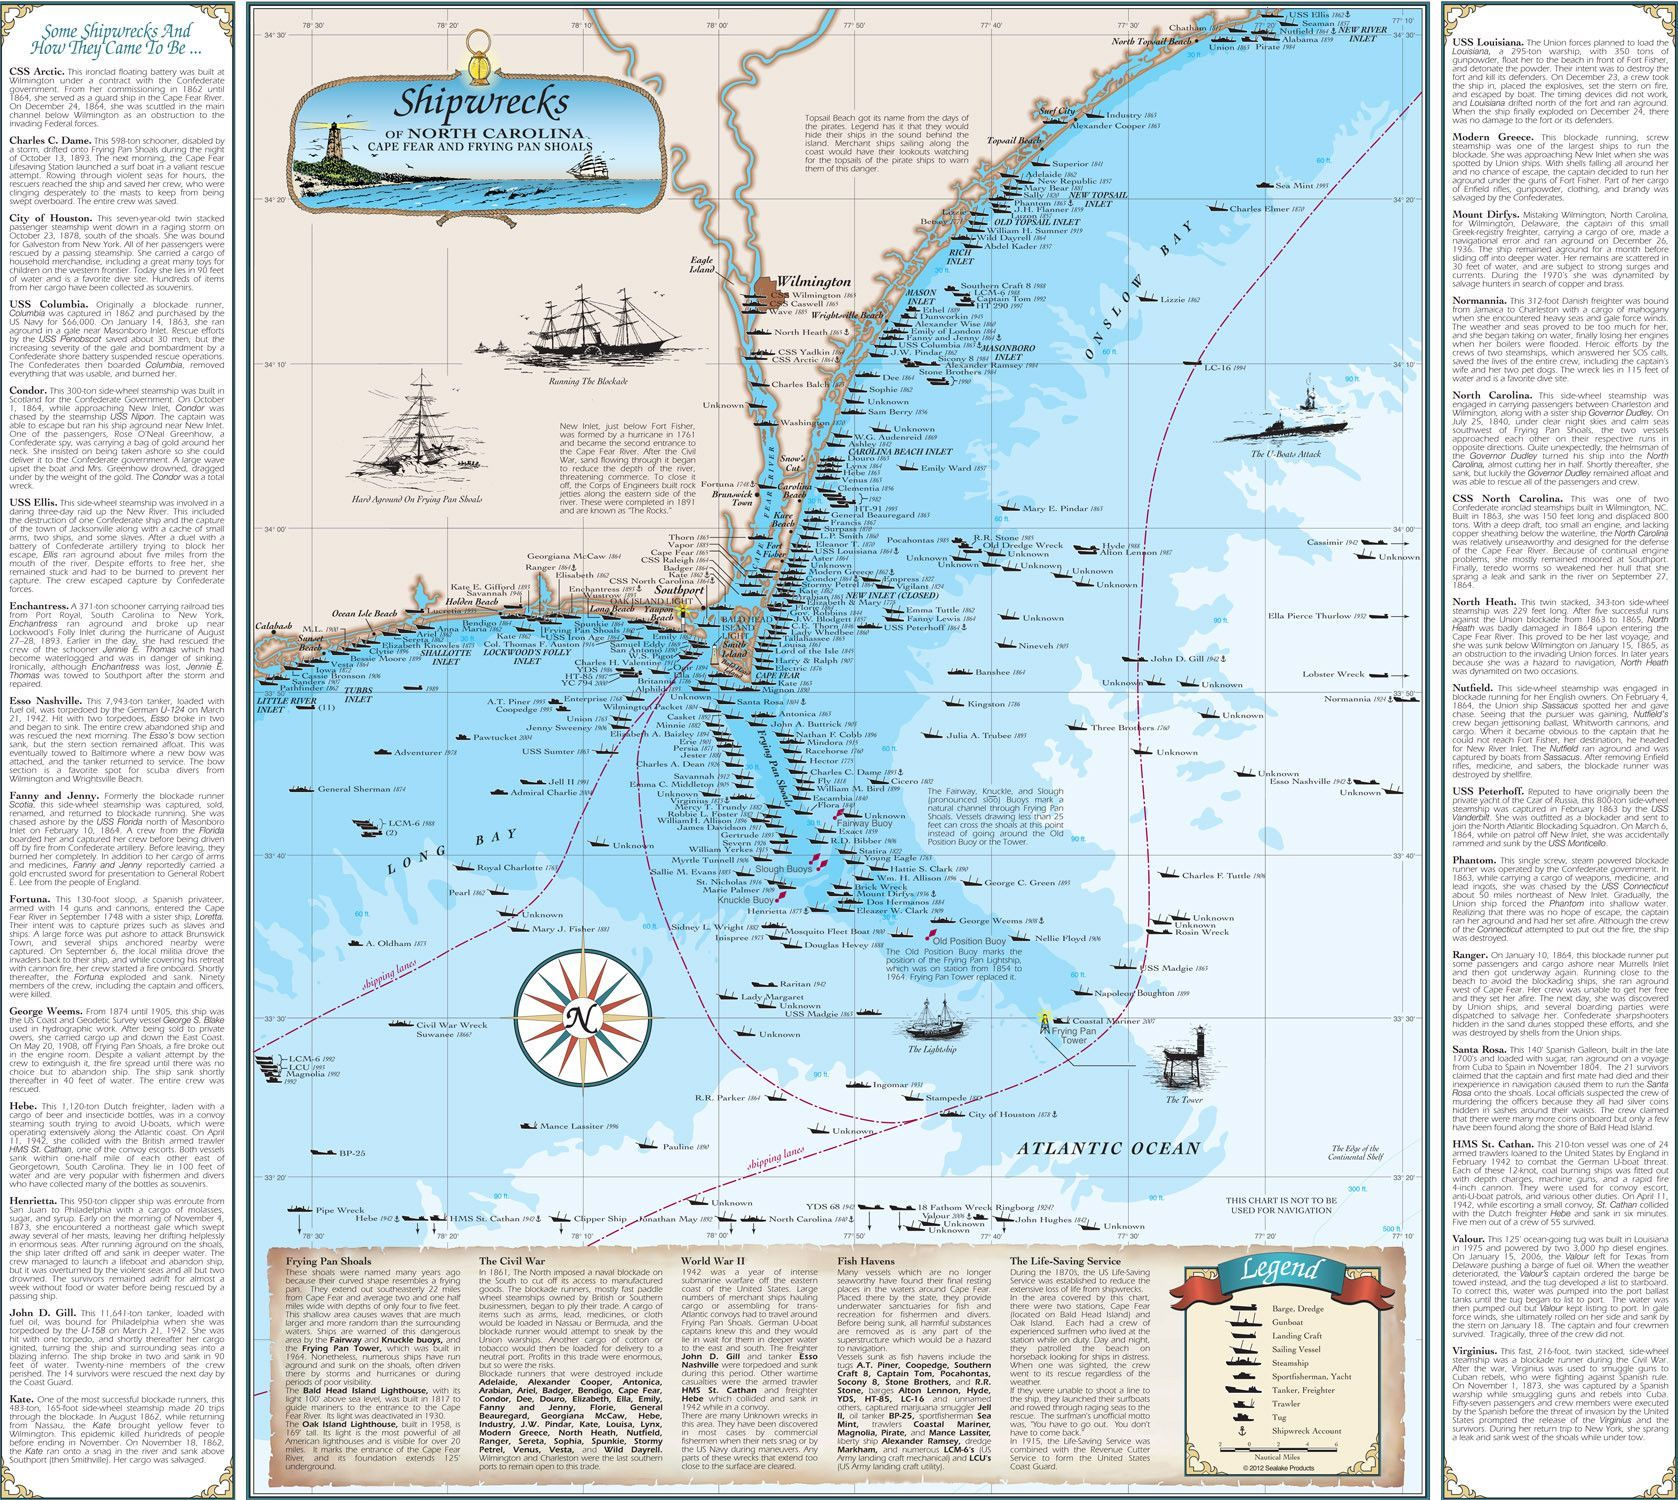 North carolina shipwreck chart cape fear and frying pan shoals north carolina shipwreck chart cape fear and frying pan shoals from sealake products llc geenschuldenfo Image collections